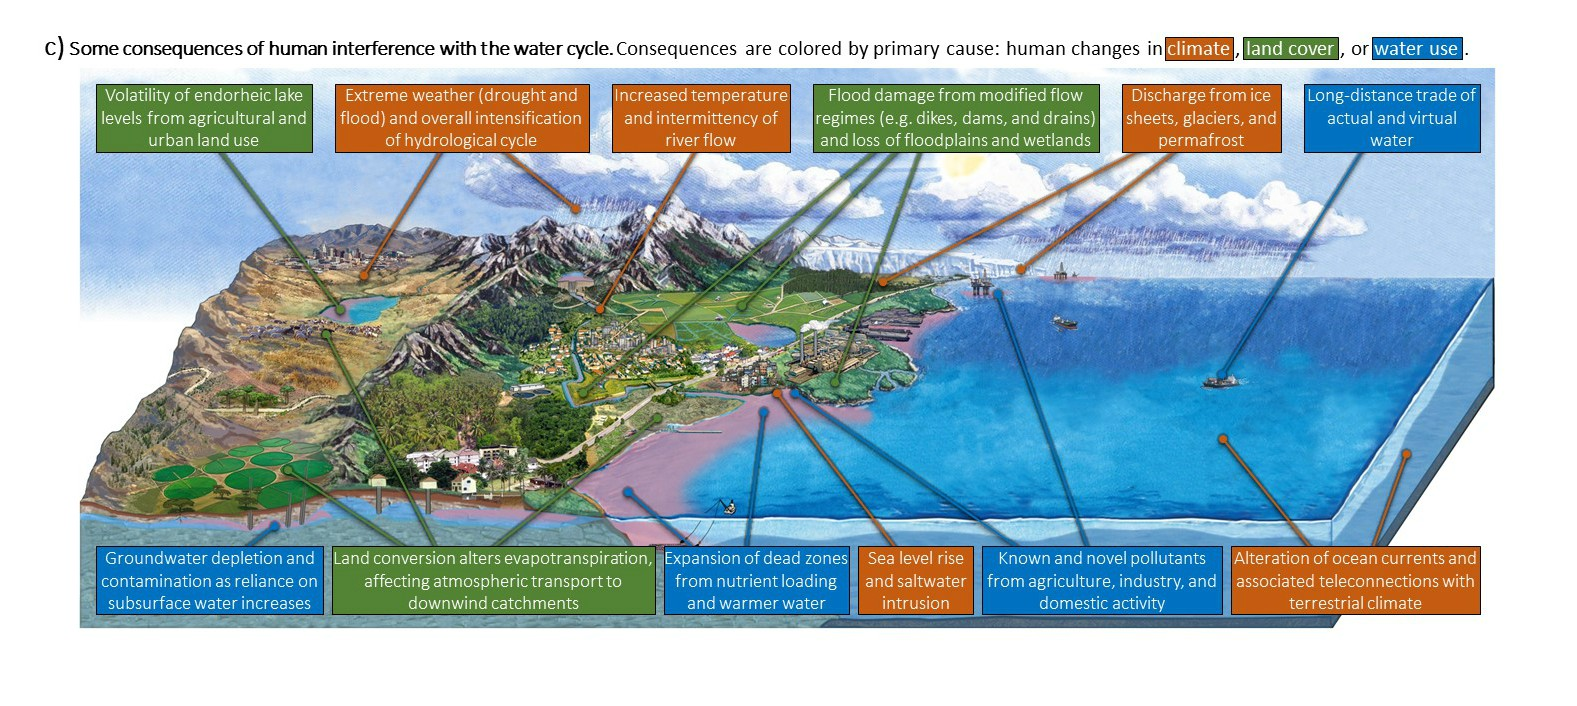 Current Water Cycle Diagrams Are Dangerously Outdated